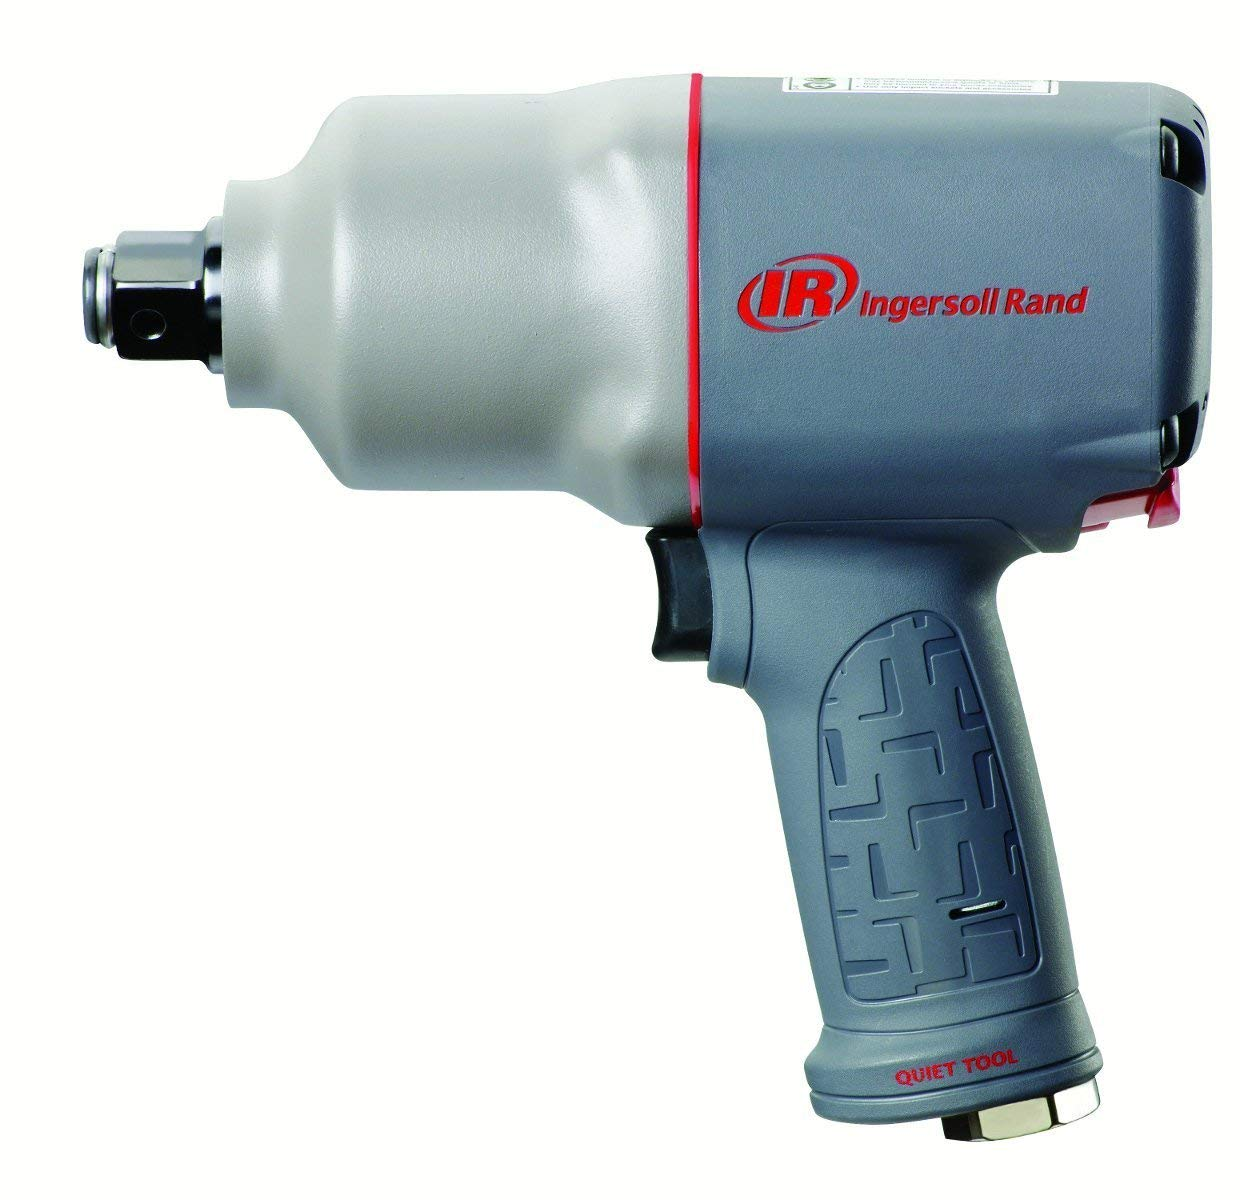 "Ingersoll Rand 3 4"" Composite Impact Wrench by Ingersoll Rand"